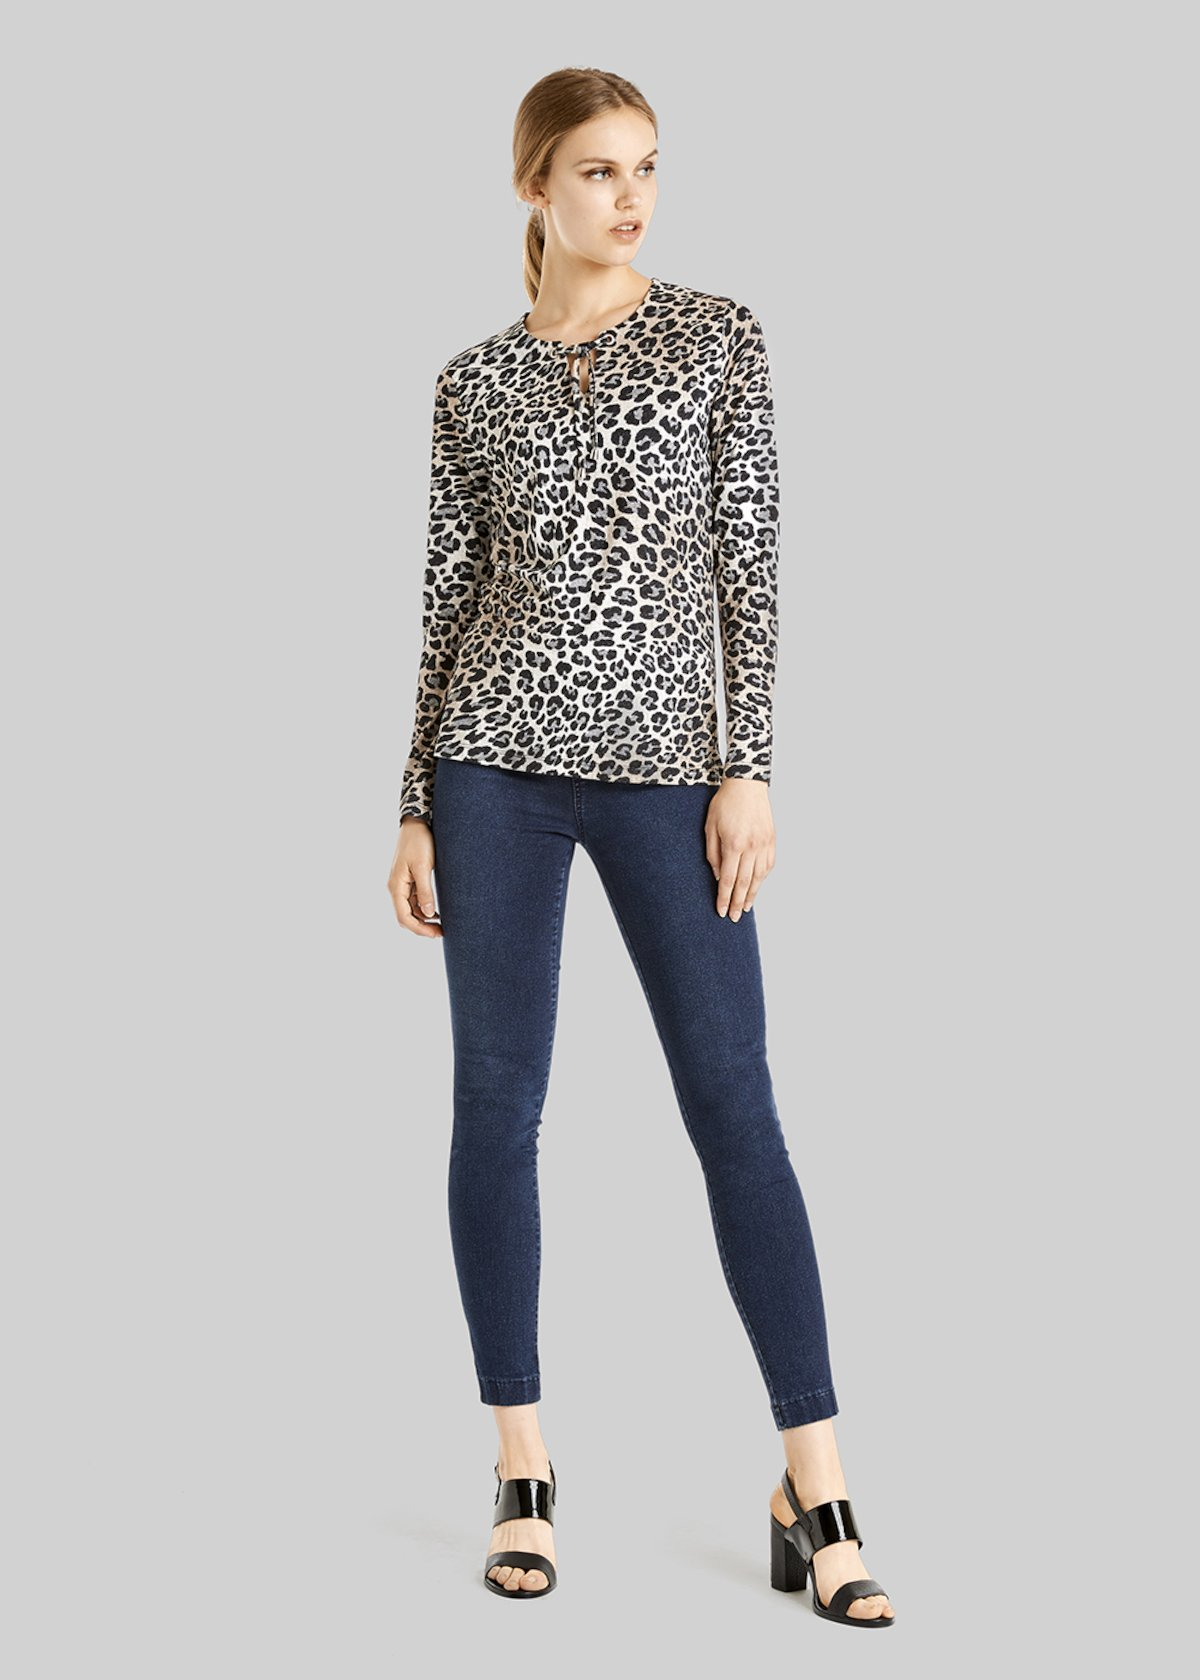 Martin sweater with animal print - Black\ Beige\ Animalier